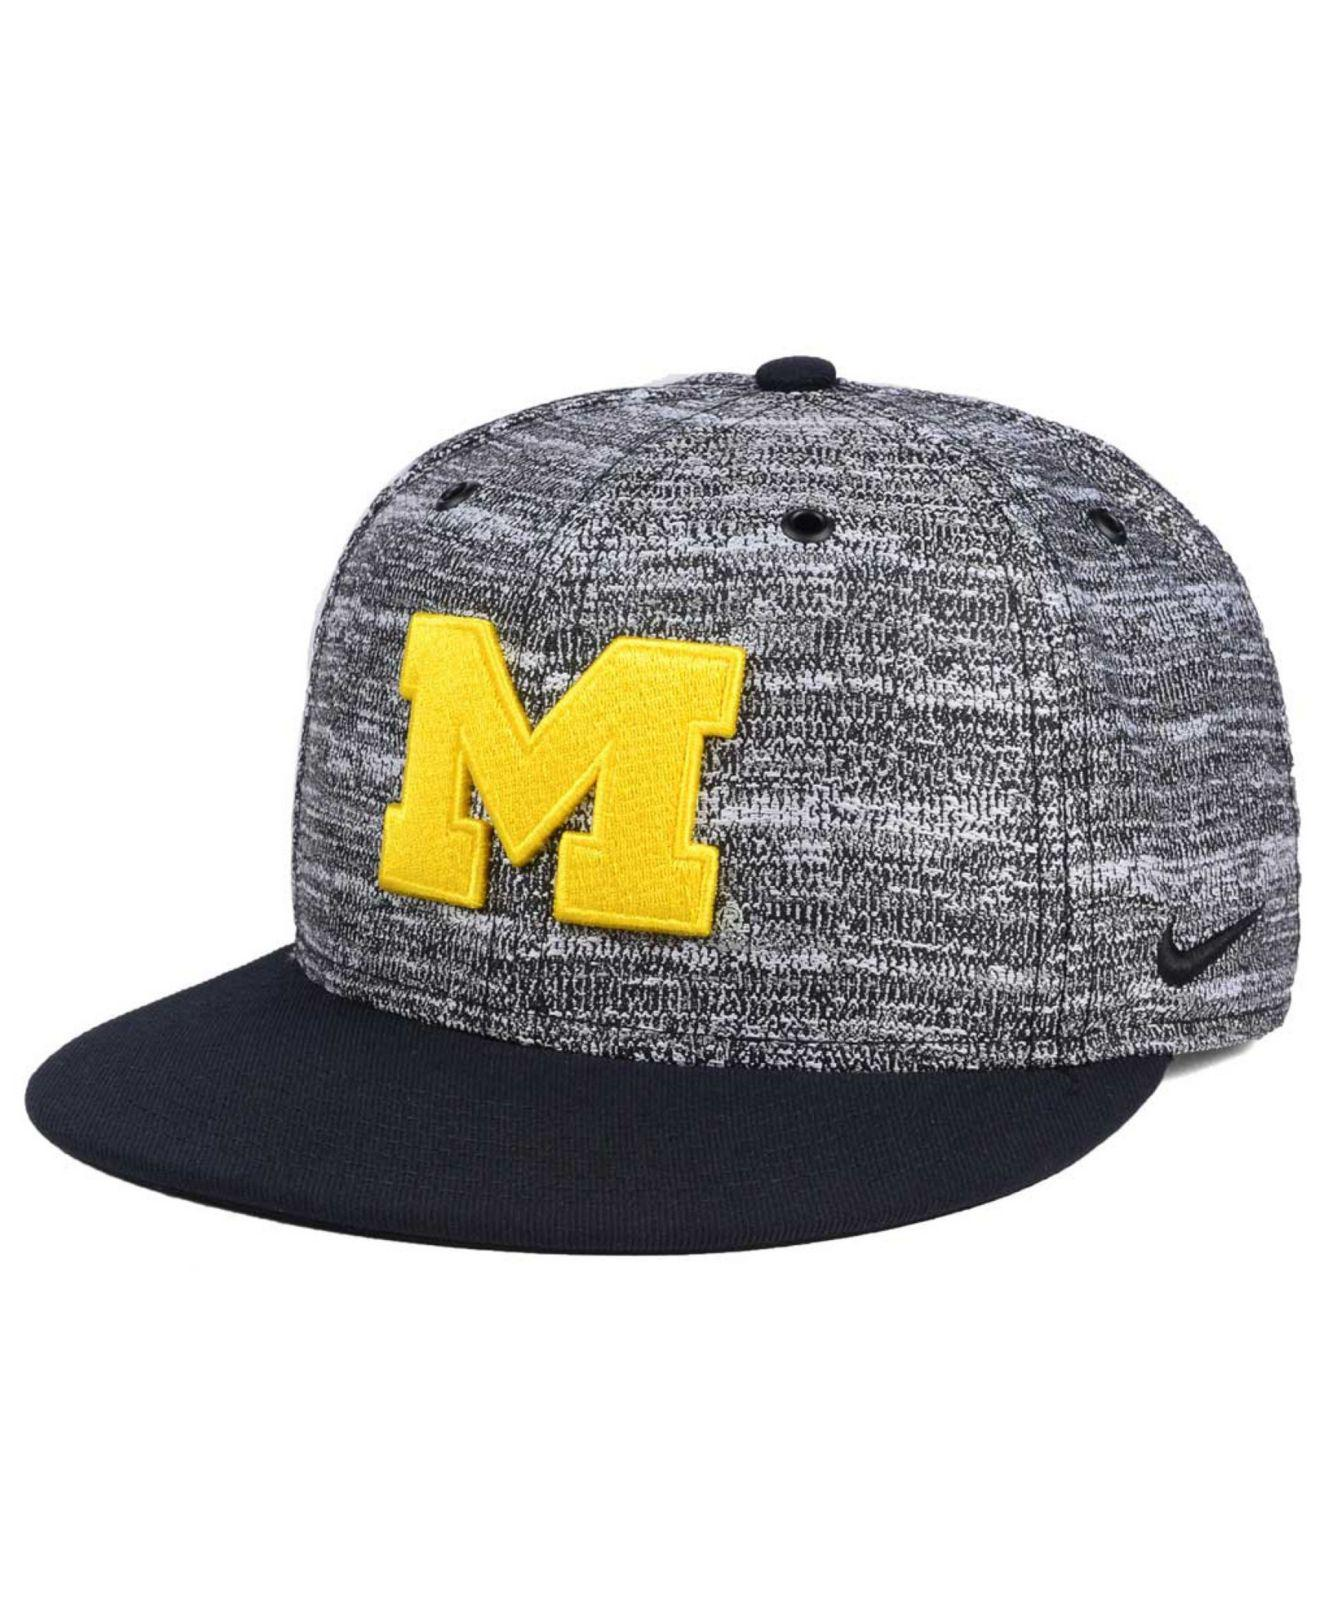 sale retailer 3376b 9a726 Lyst - Nike Col True Heathered Snapback Cap in Gray for Men